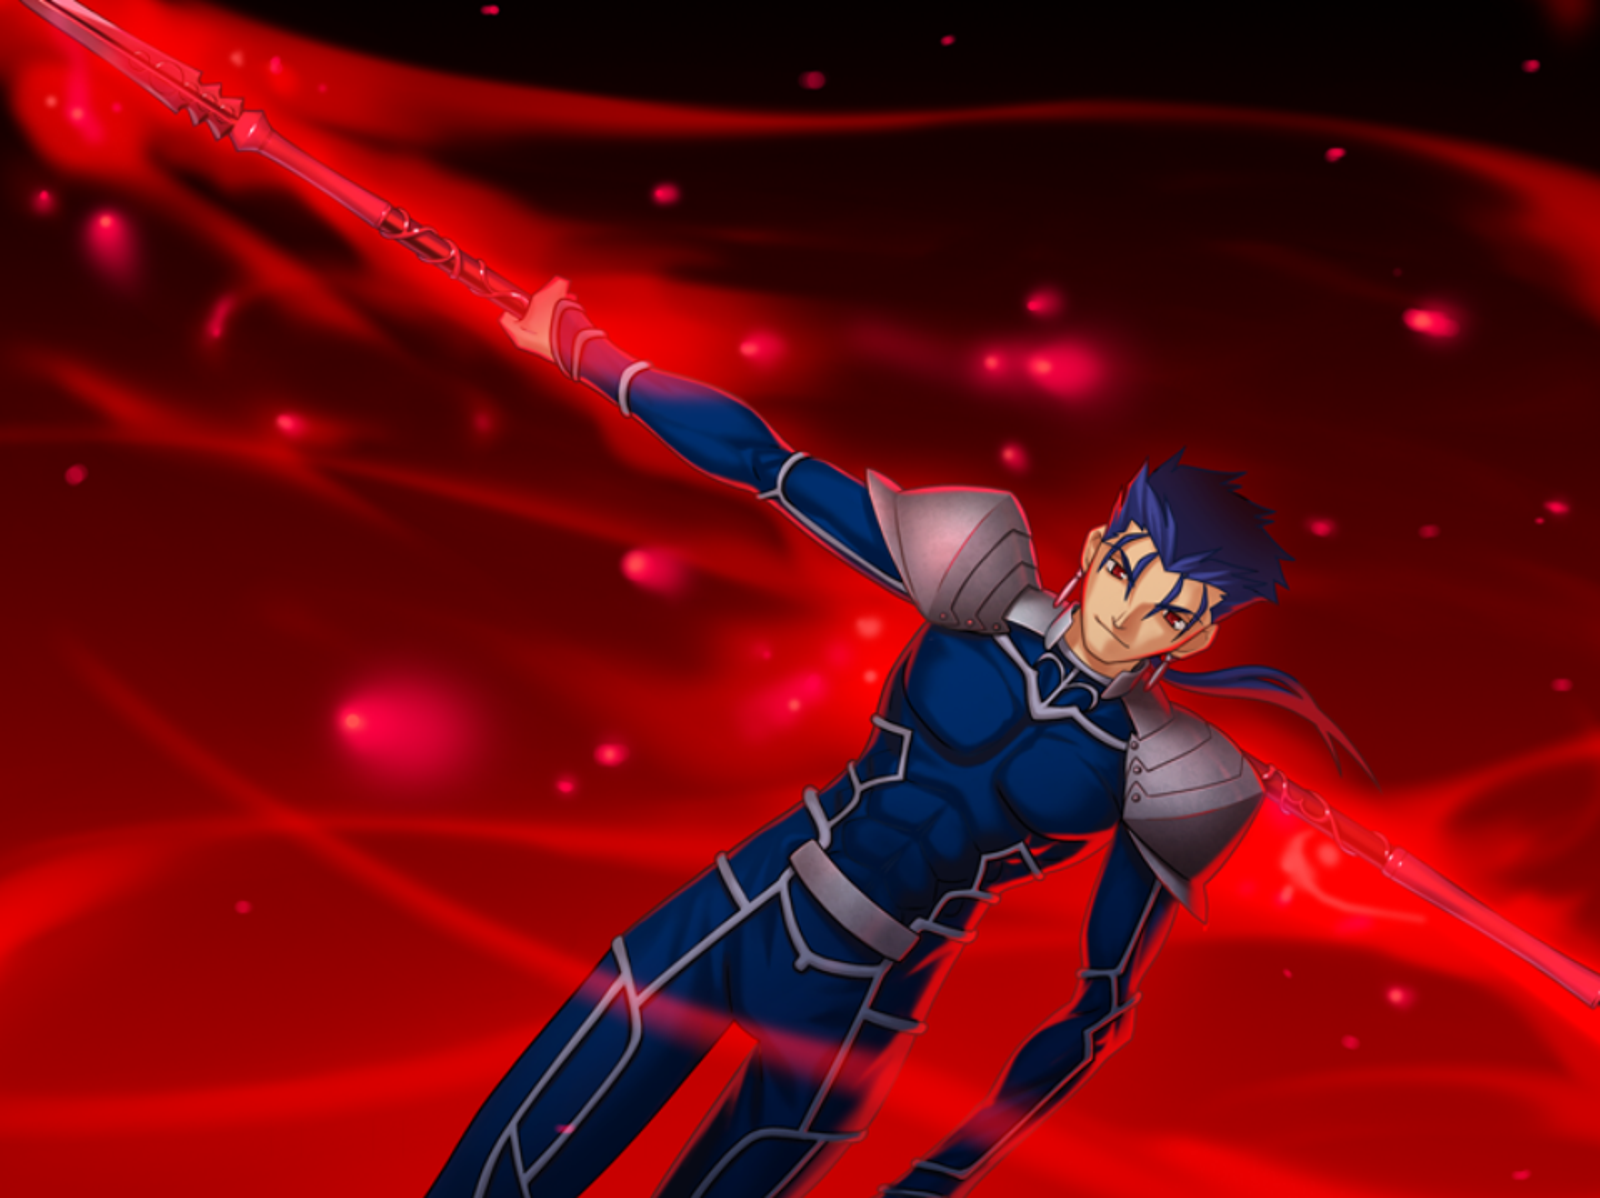 Blue-haired Lycra Irish boy with his pointy stick